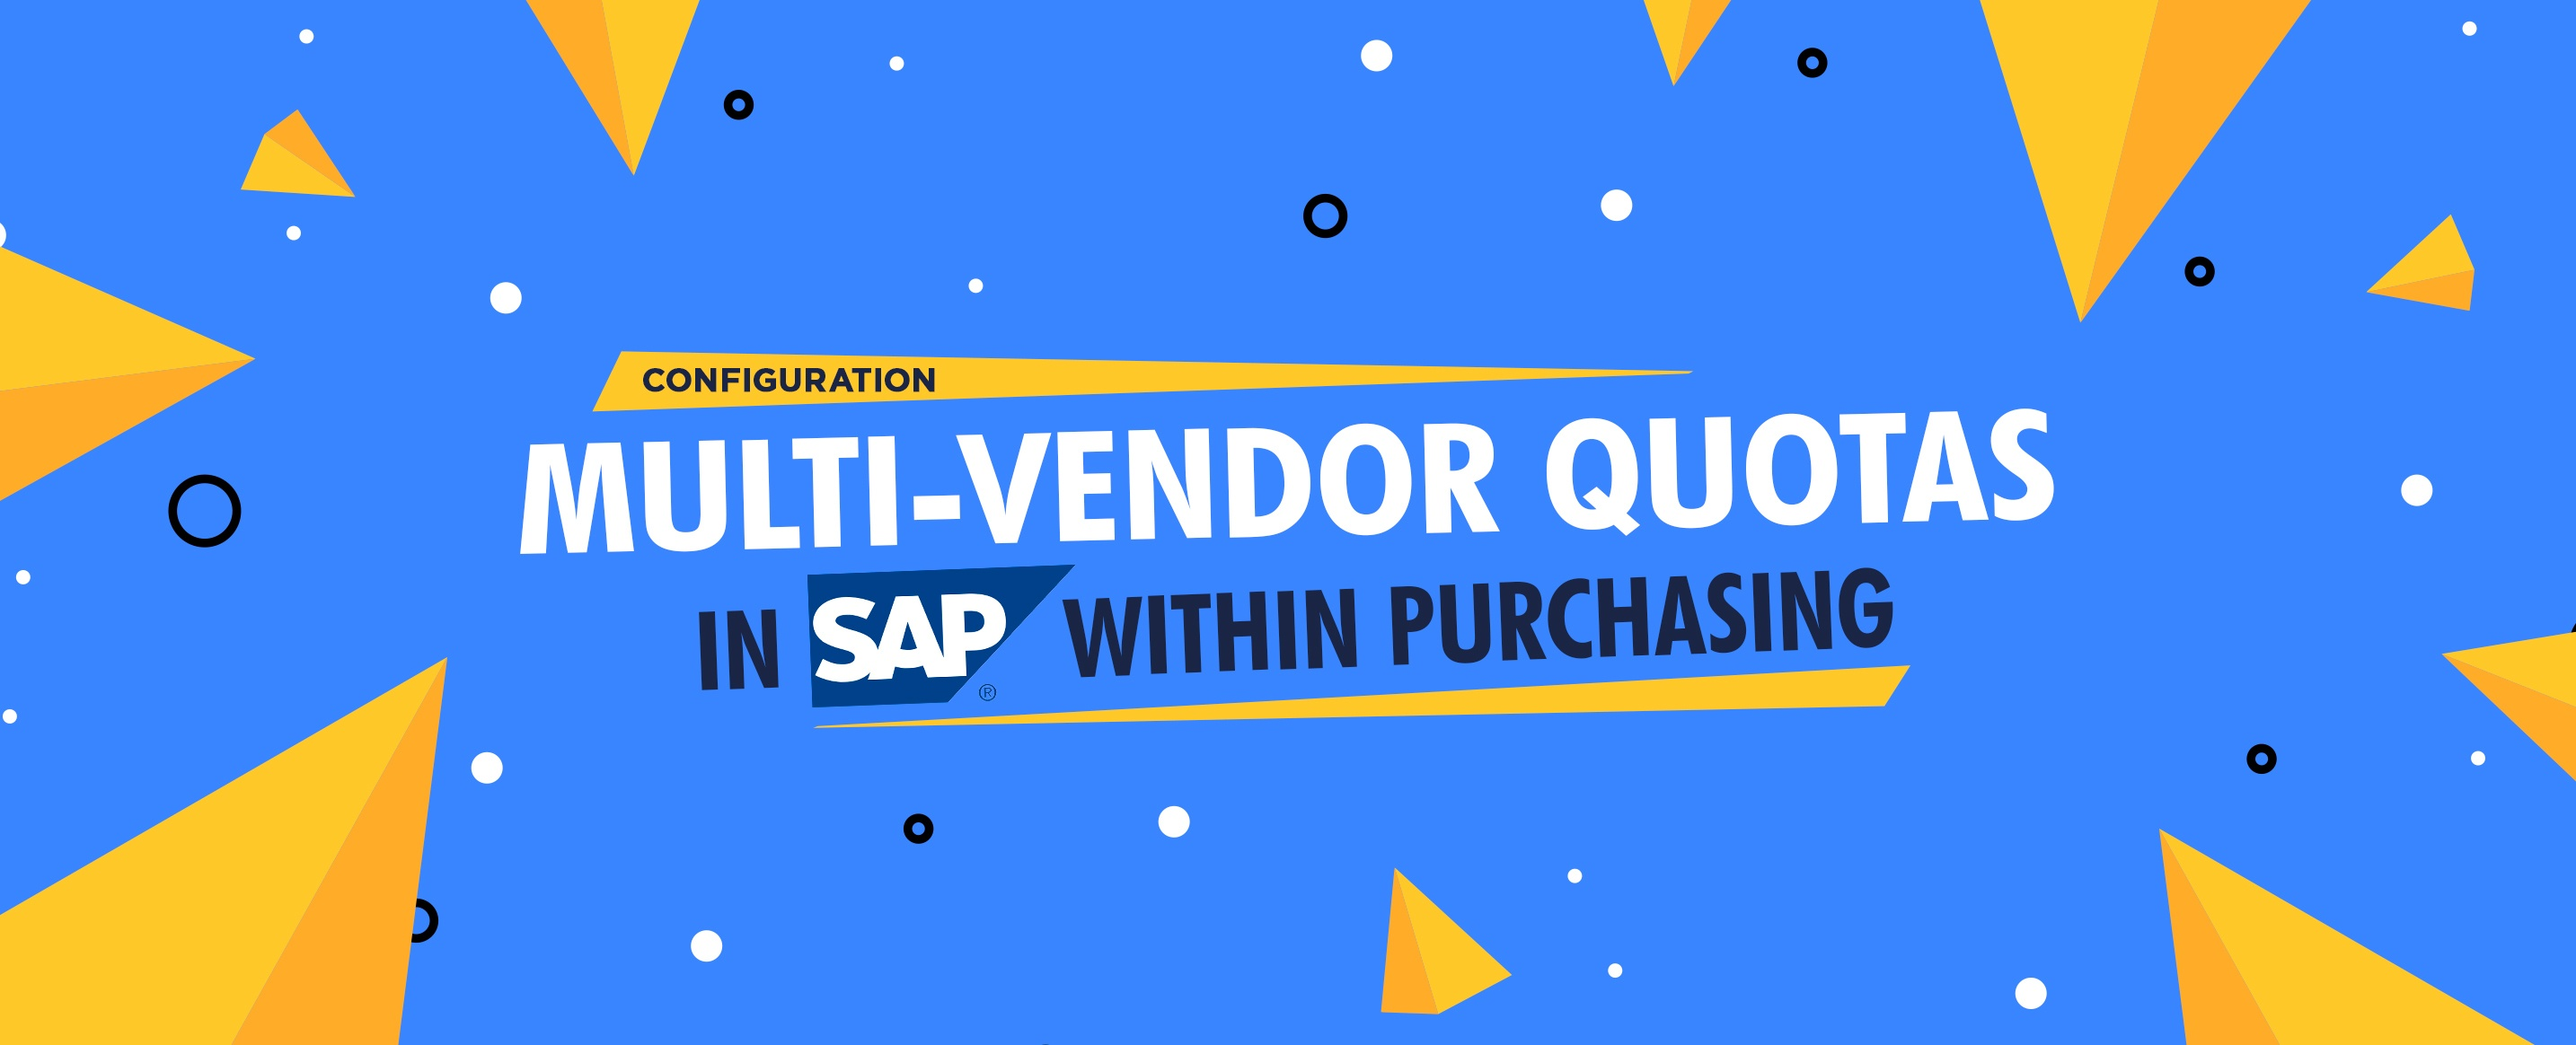 Configure Multi-Vendor Quotas in SAP ECC Within Purchasing